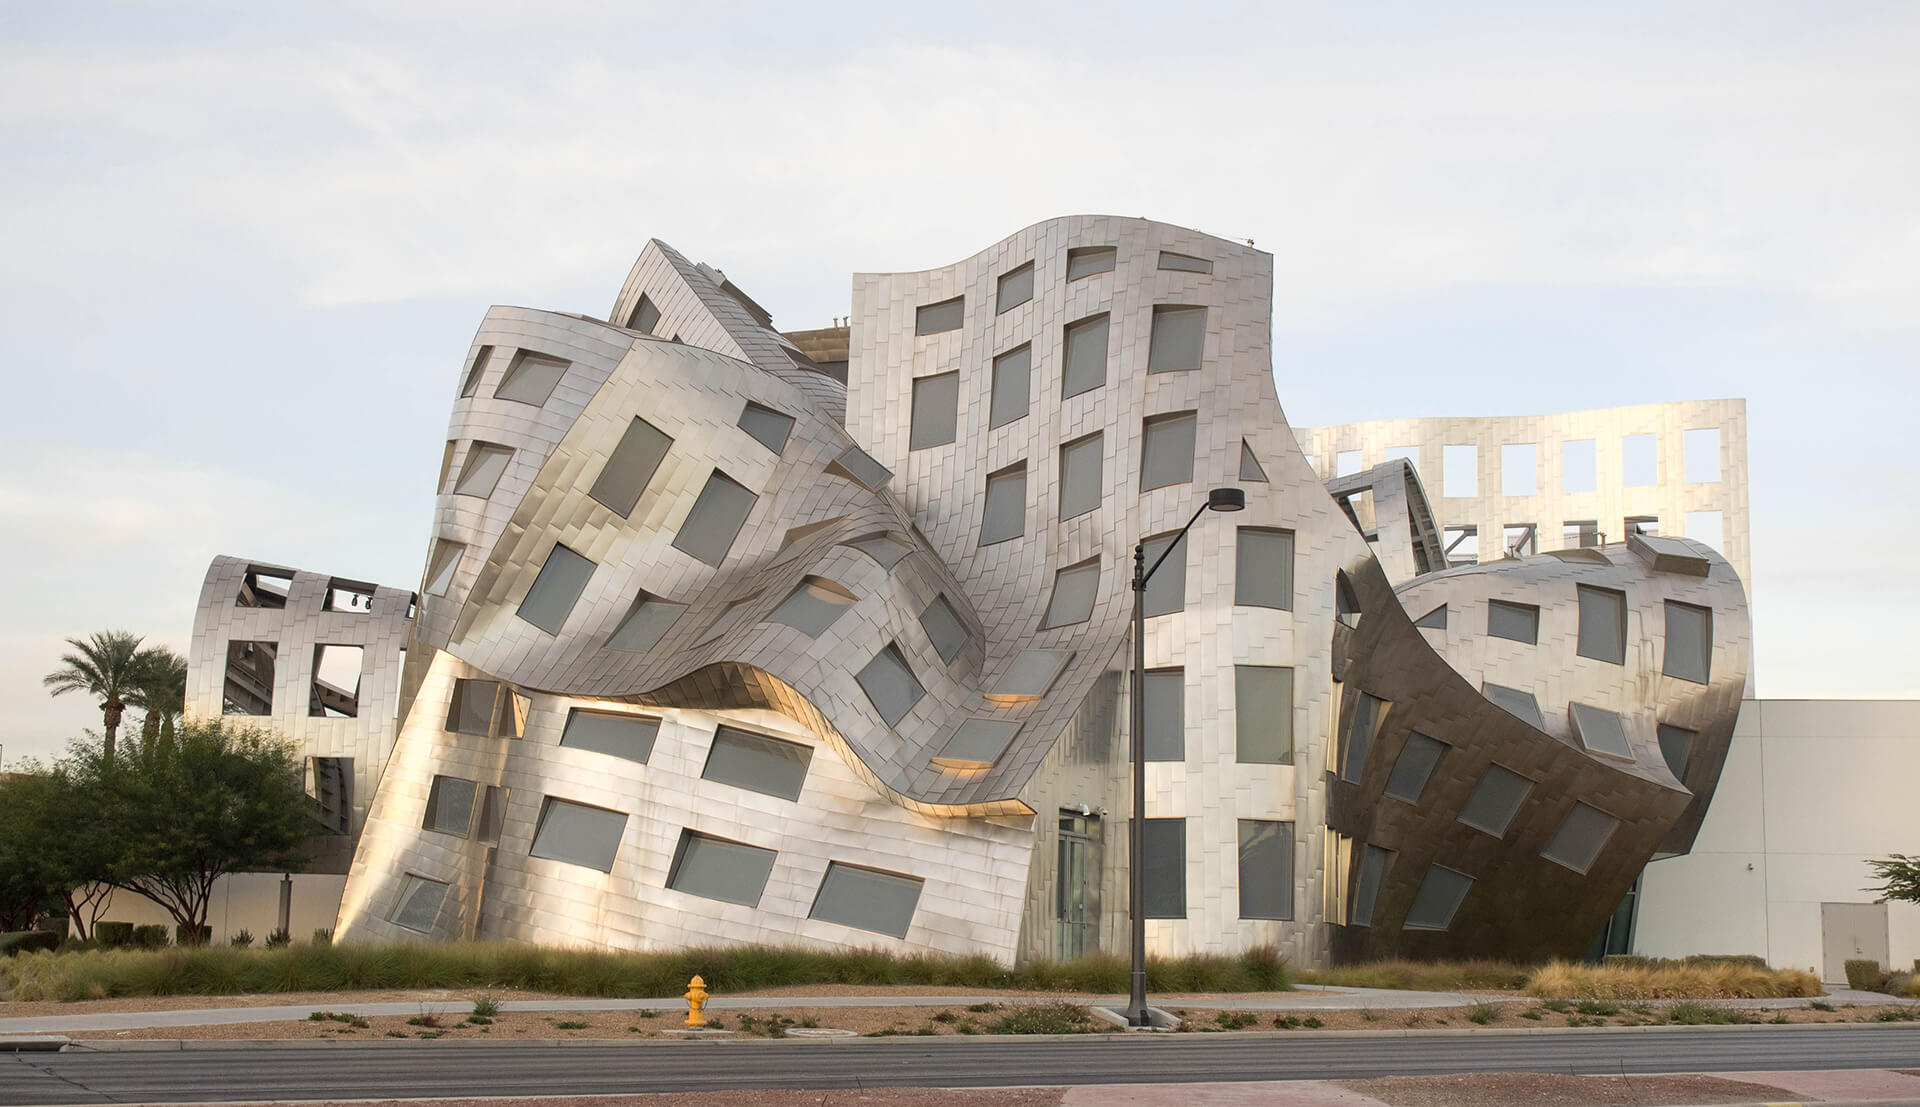 The Lou Ruvo Center for Brain Health of the Cleveland Clinic in Las Vegas, Nevada  | Frank Gehry | STIRworld